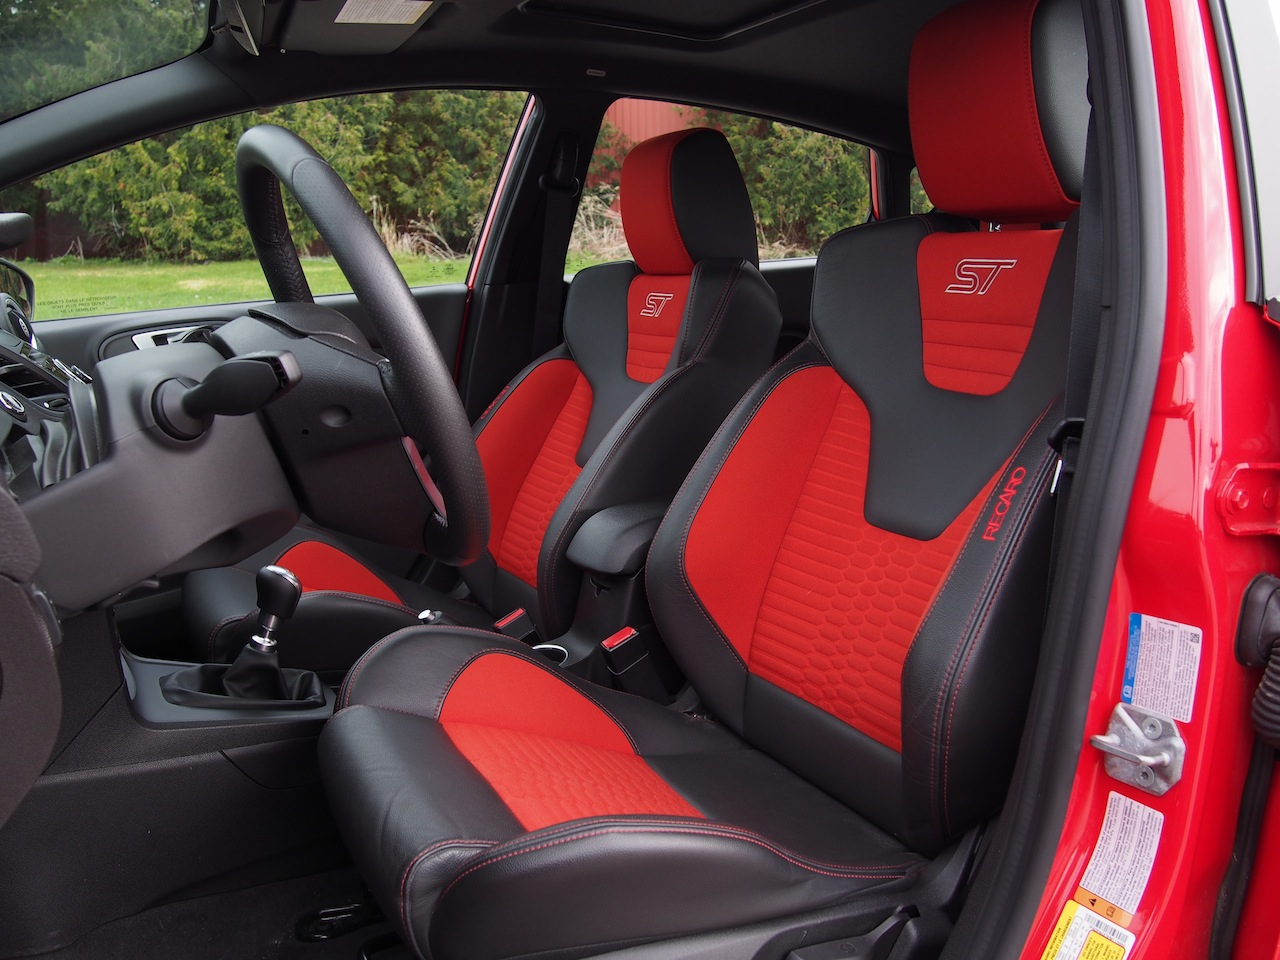 2014 Ford Fiesta ST Review Cars Photos Test Drives